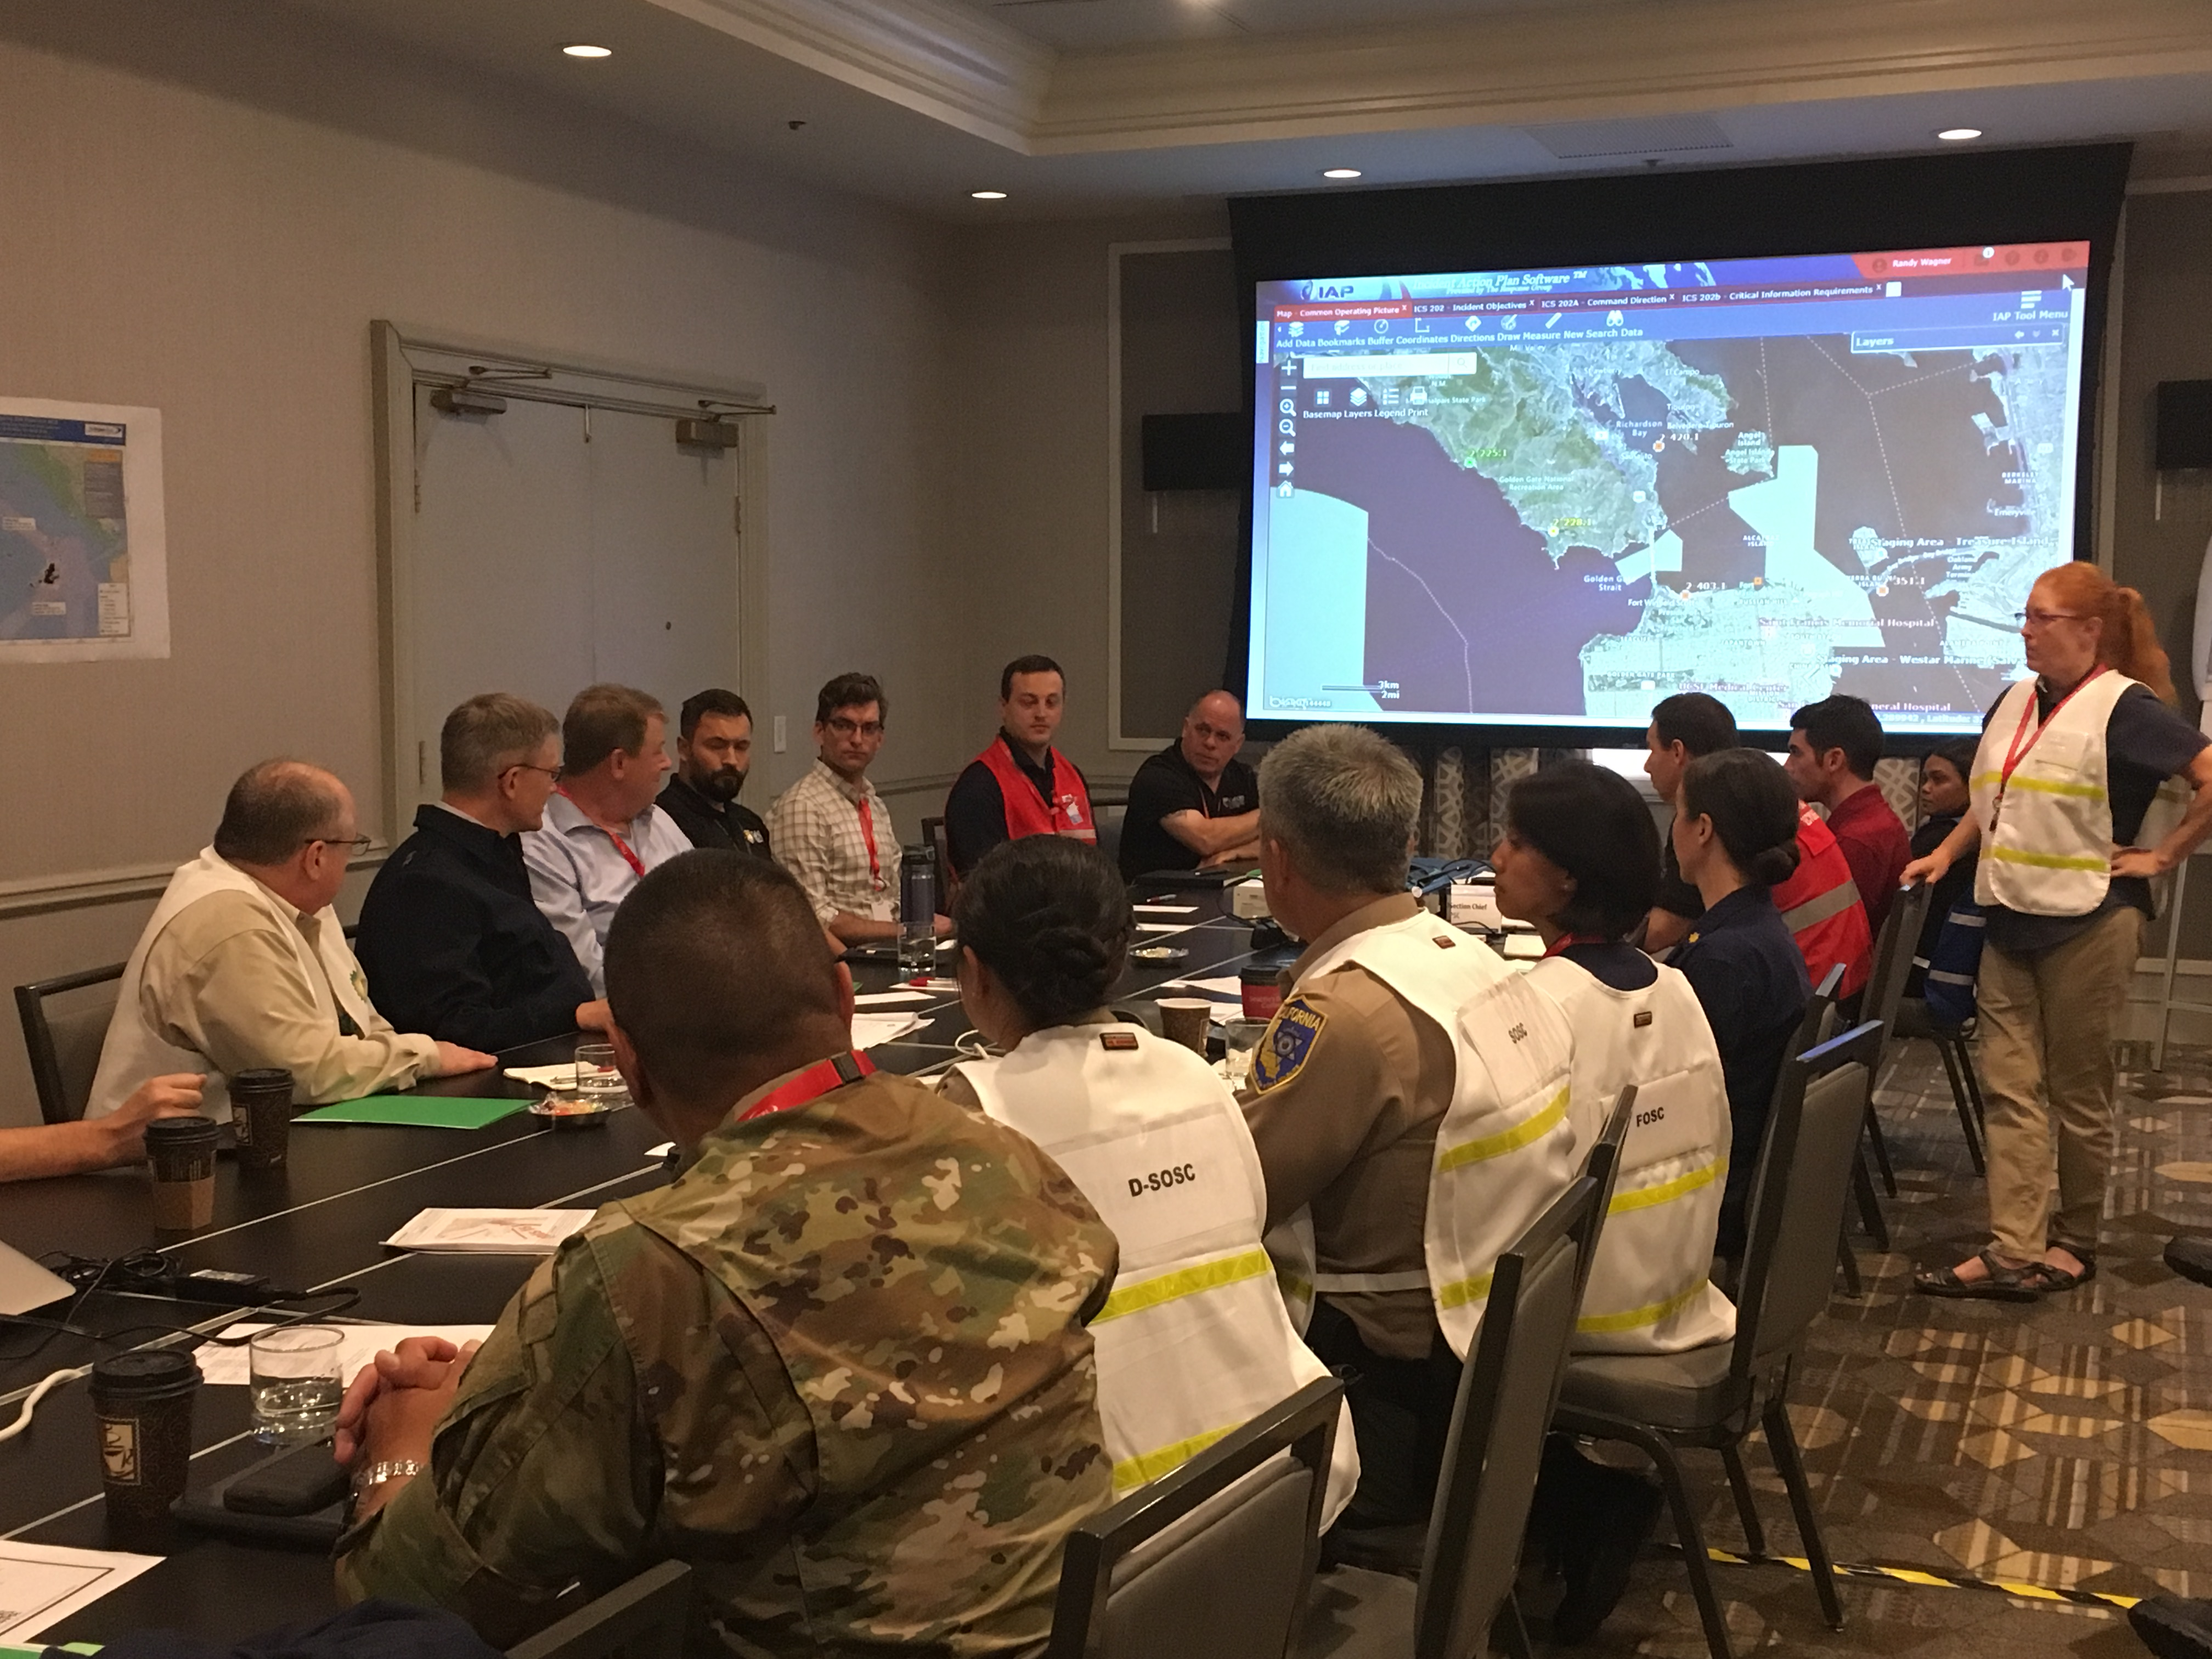 Agency officials in vests sitting at table with large map on screen.